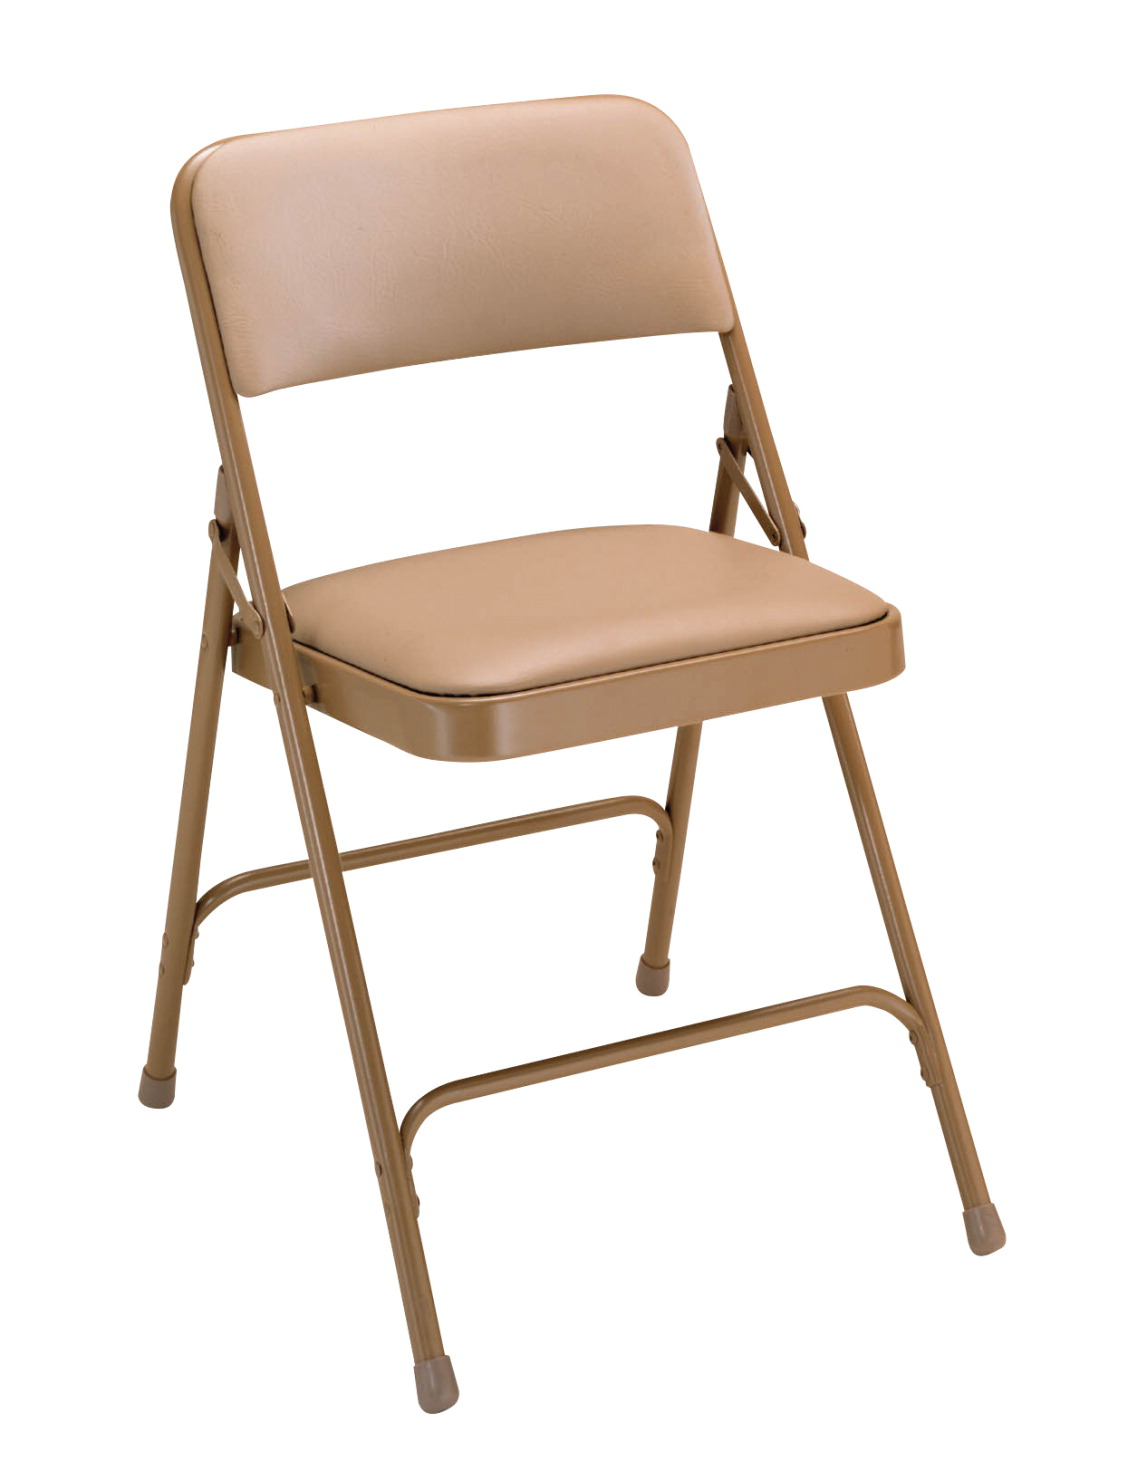 National Public Seating 1200 Series Premium Upholstered Vinyl Folding Chair, 17-3/4 Inch Seat, Various Options